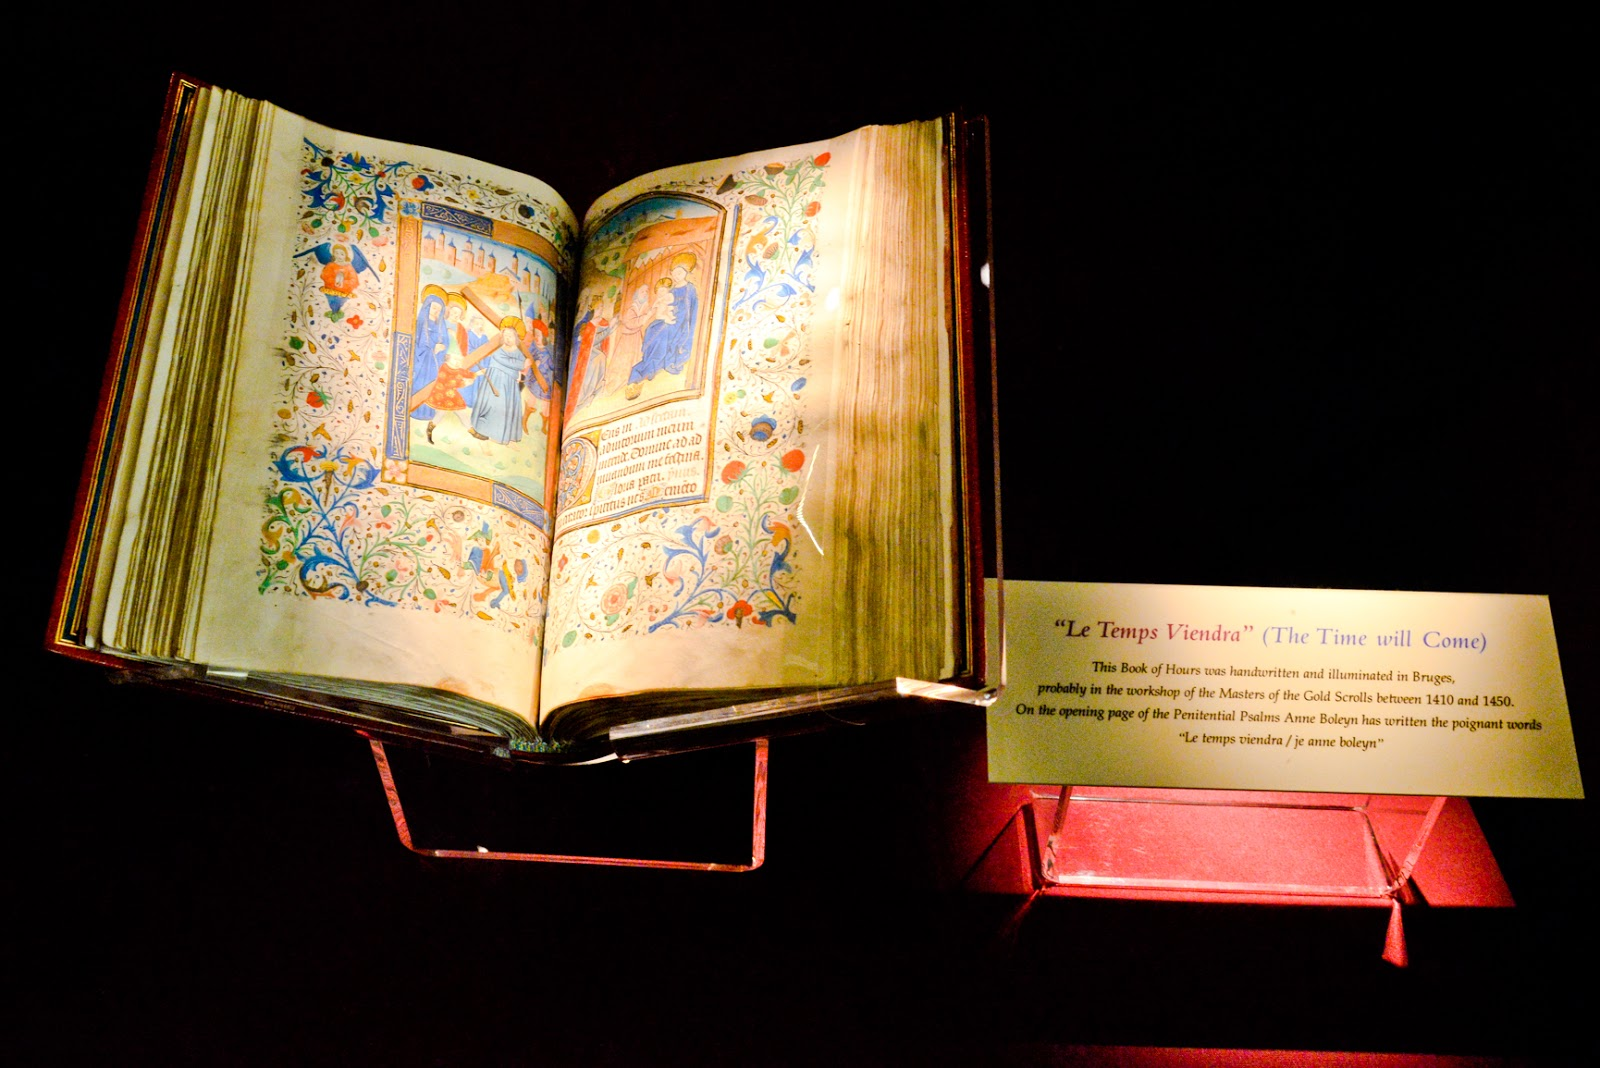 anne boleyns prayer books, anne boleyn book of hours, hever castle